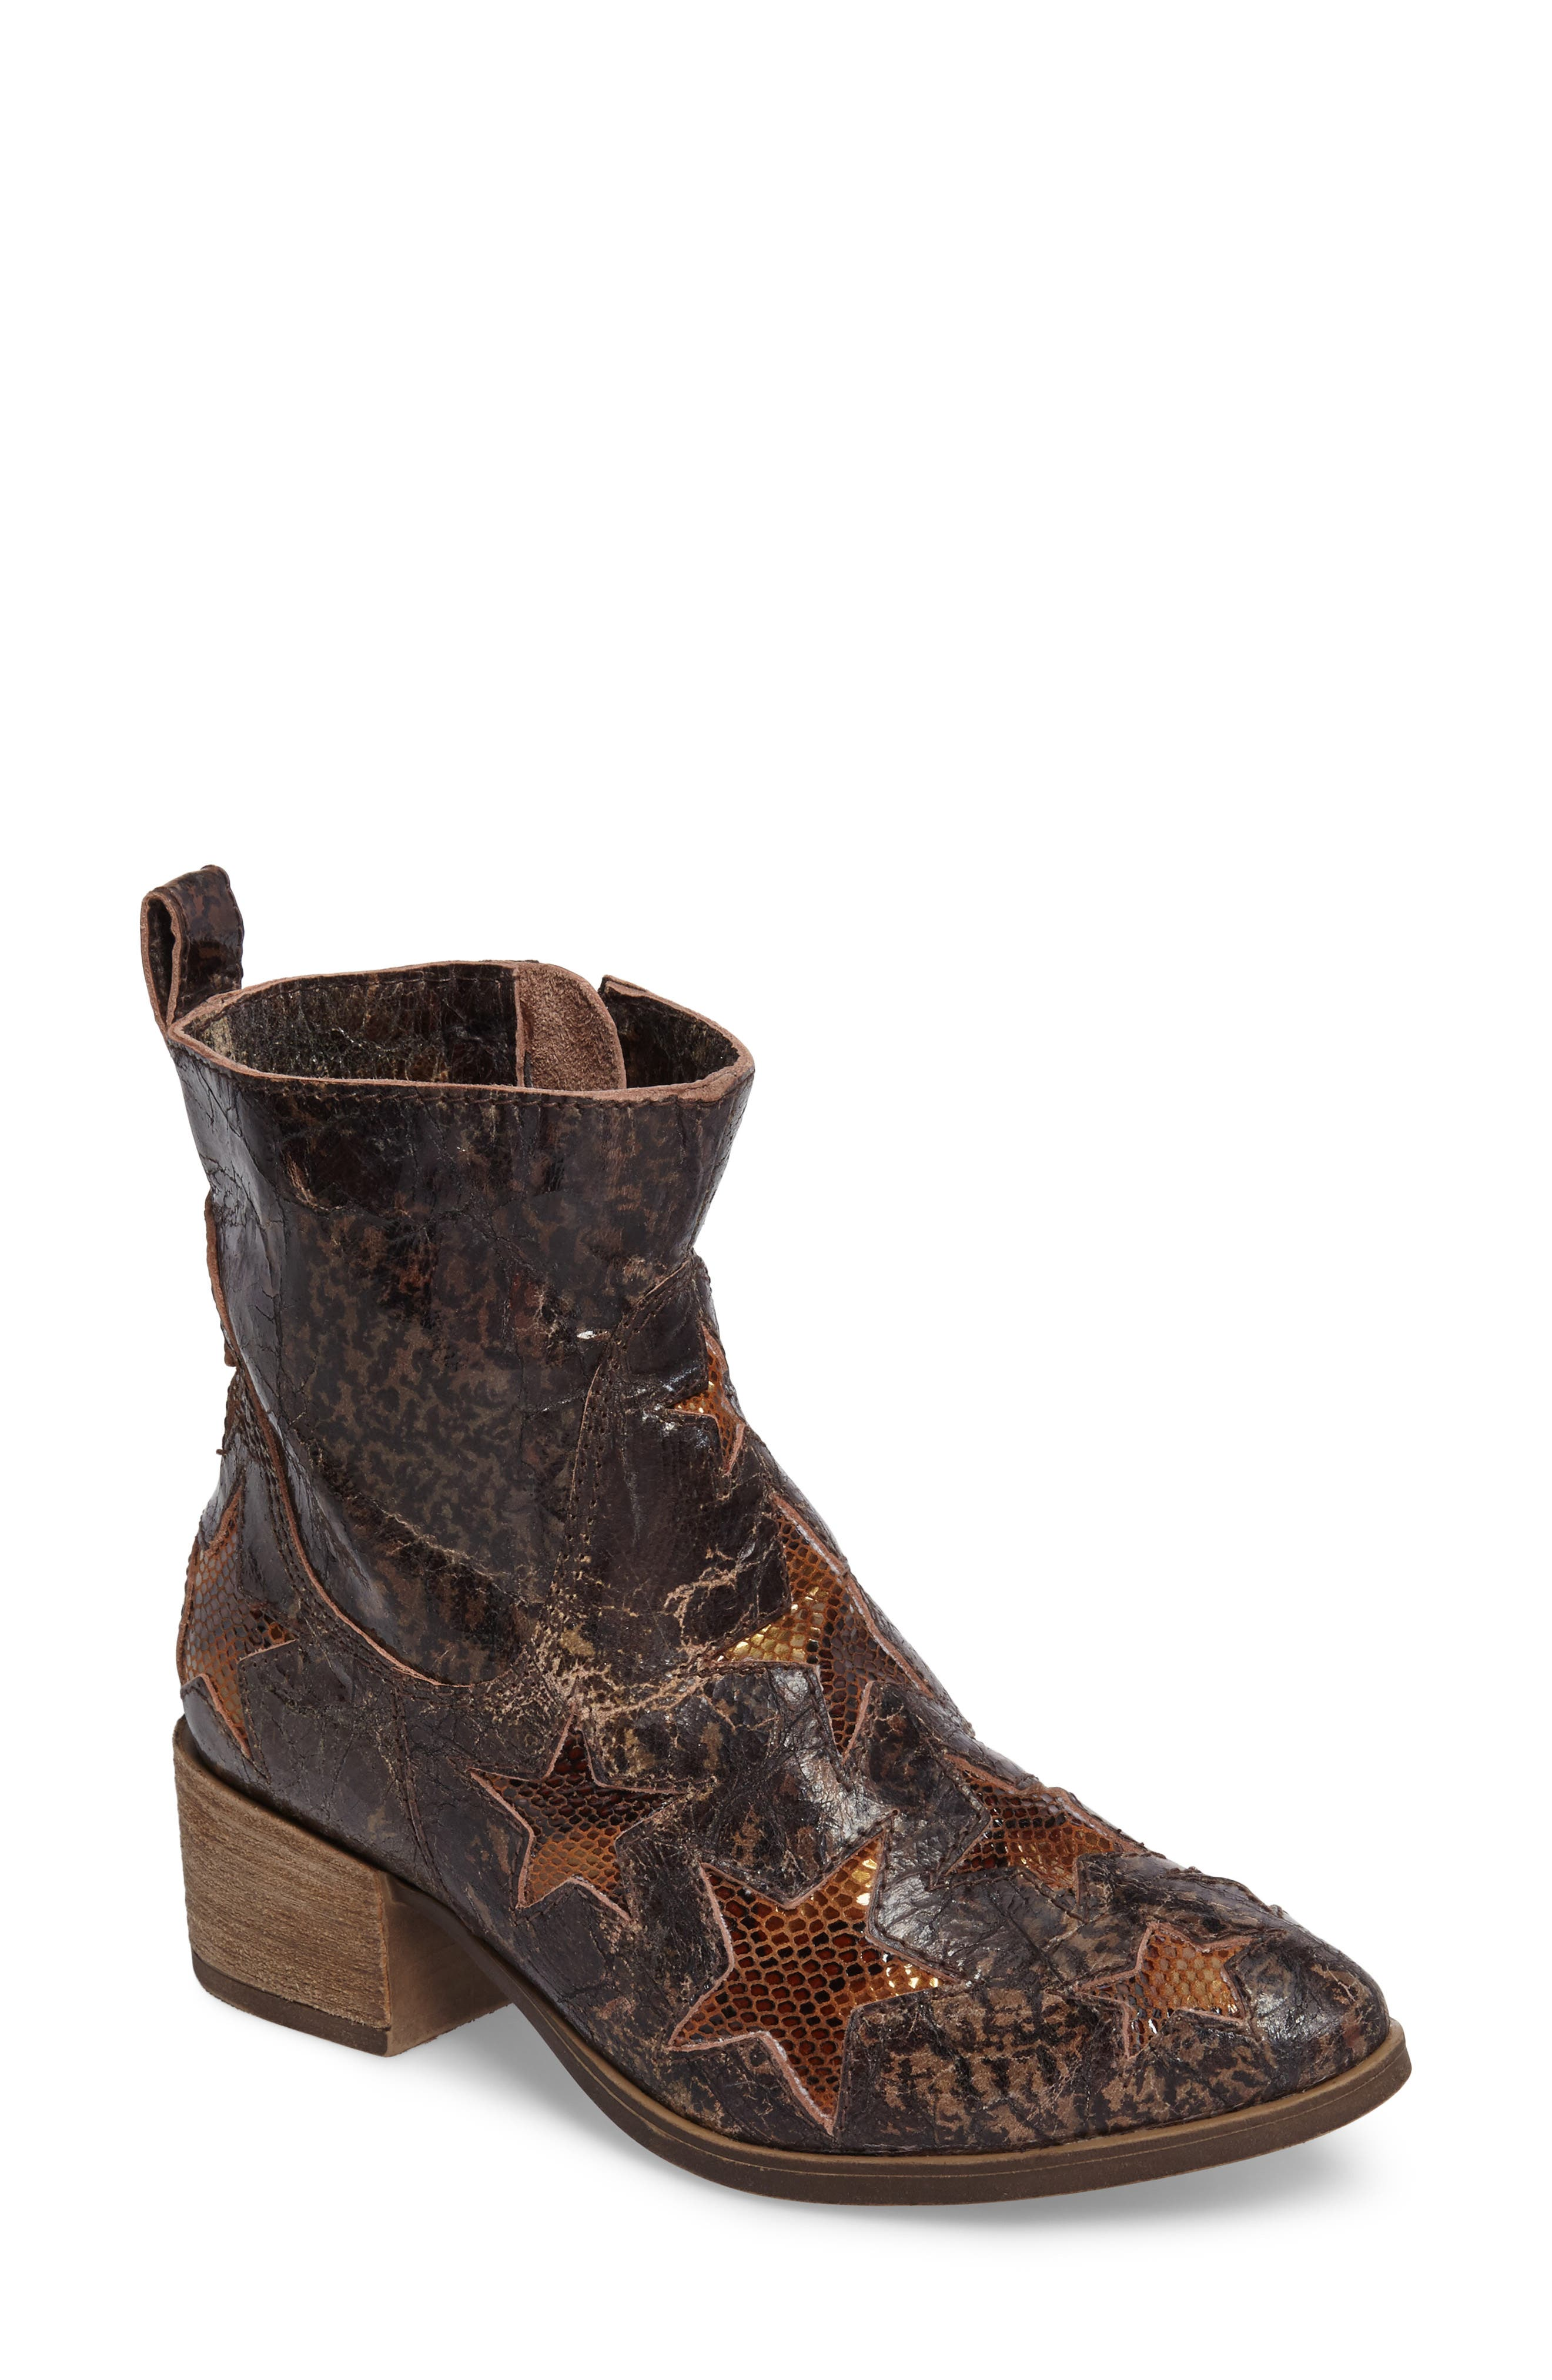 Crinkle Finish Star Bootie,                             Main thumbnail 1, color,                             MID BROWN LEATHER